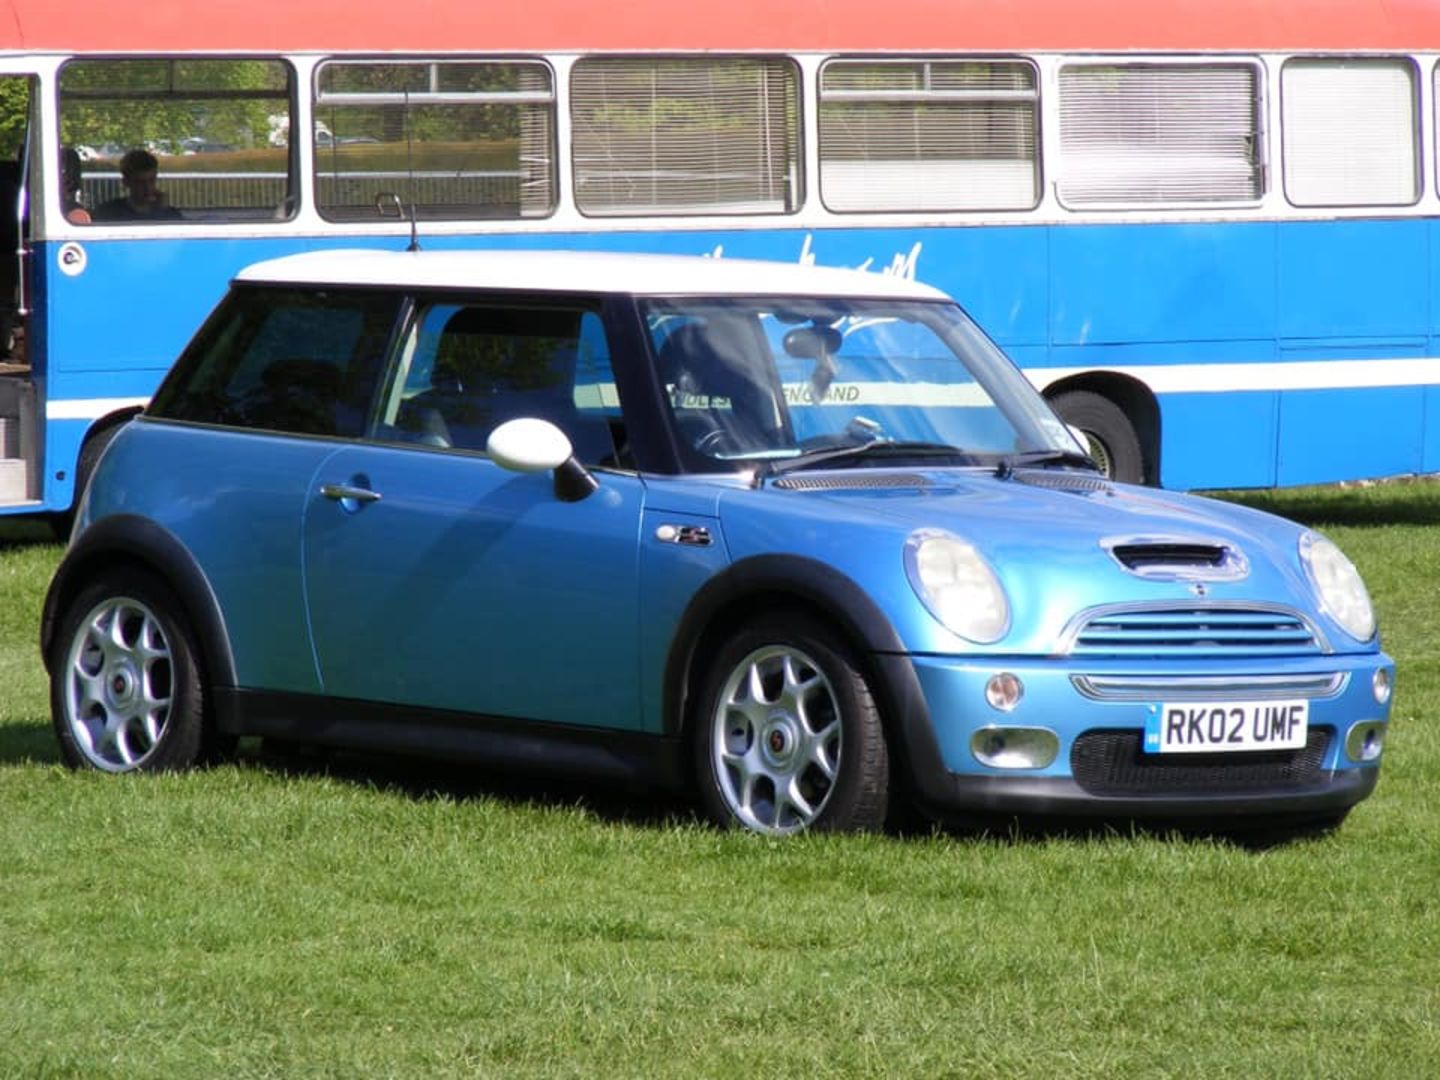 MINI R53 Cooper S at Himley Hall MINI show 2019